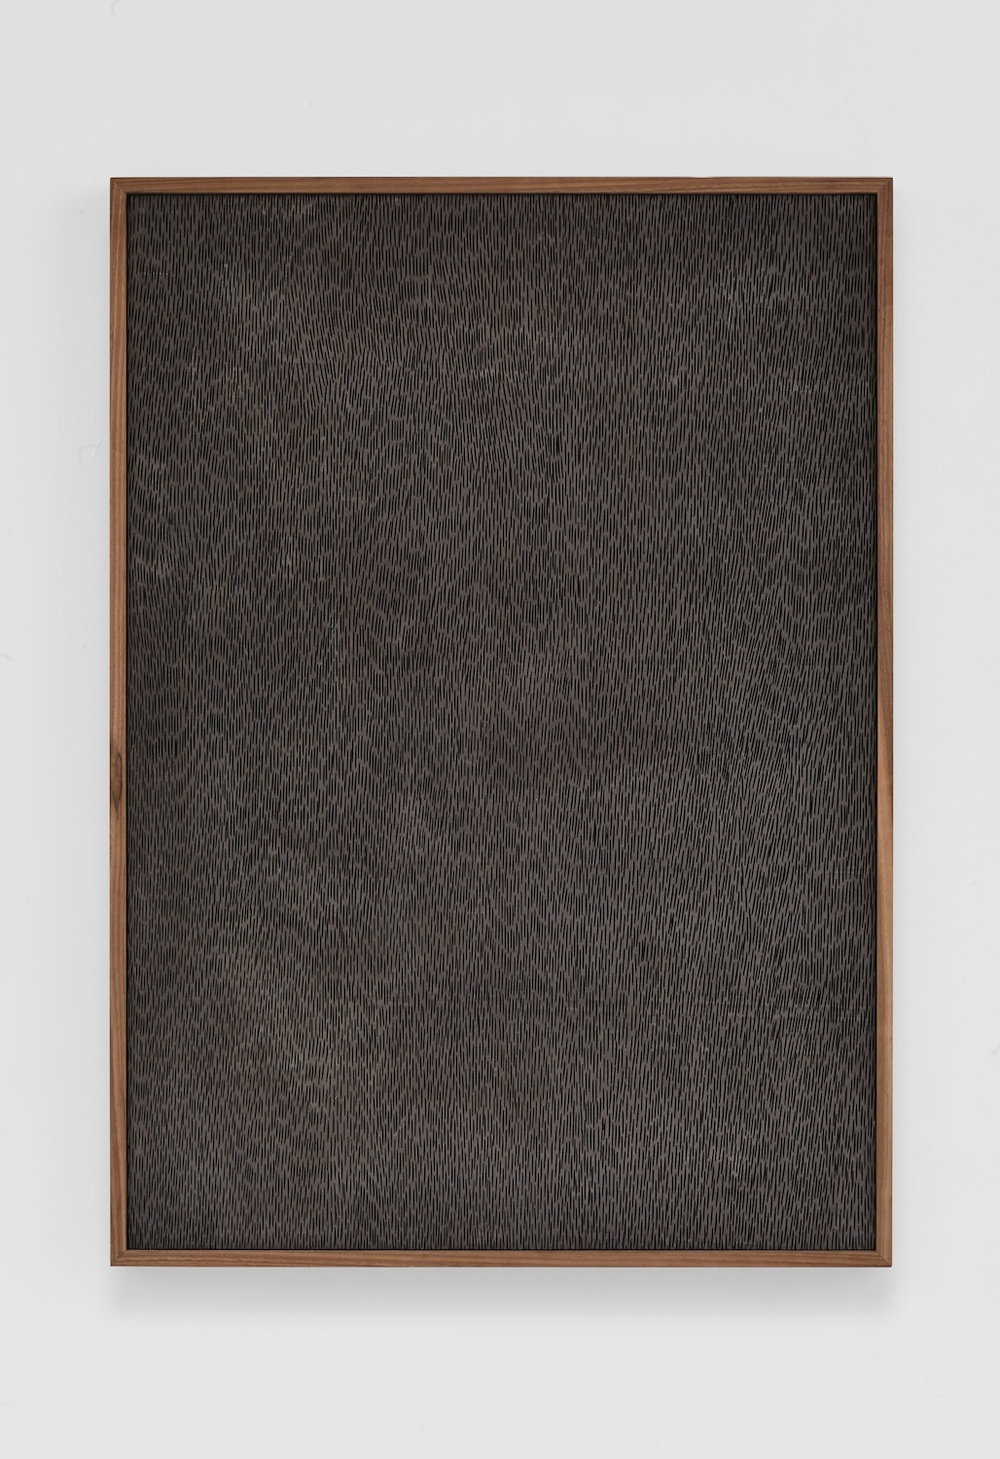 "Adam Pendleton Untitled (Etched Plaster) 2014 Pigmented hydrocal in walnut frame 42 ½"" x 30 ½"" x 2 ½"" AP355"